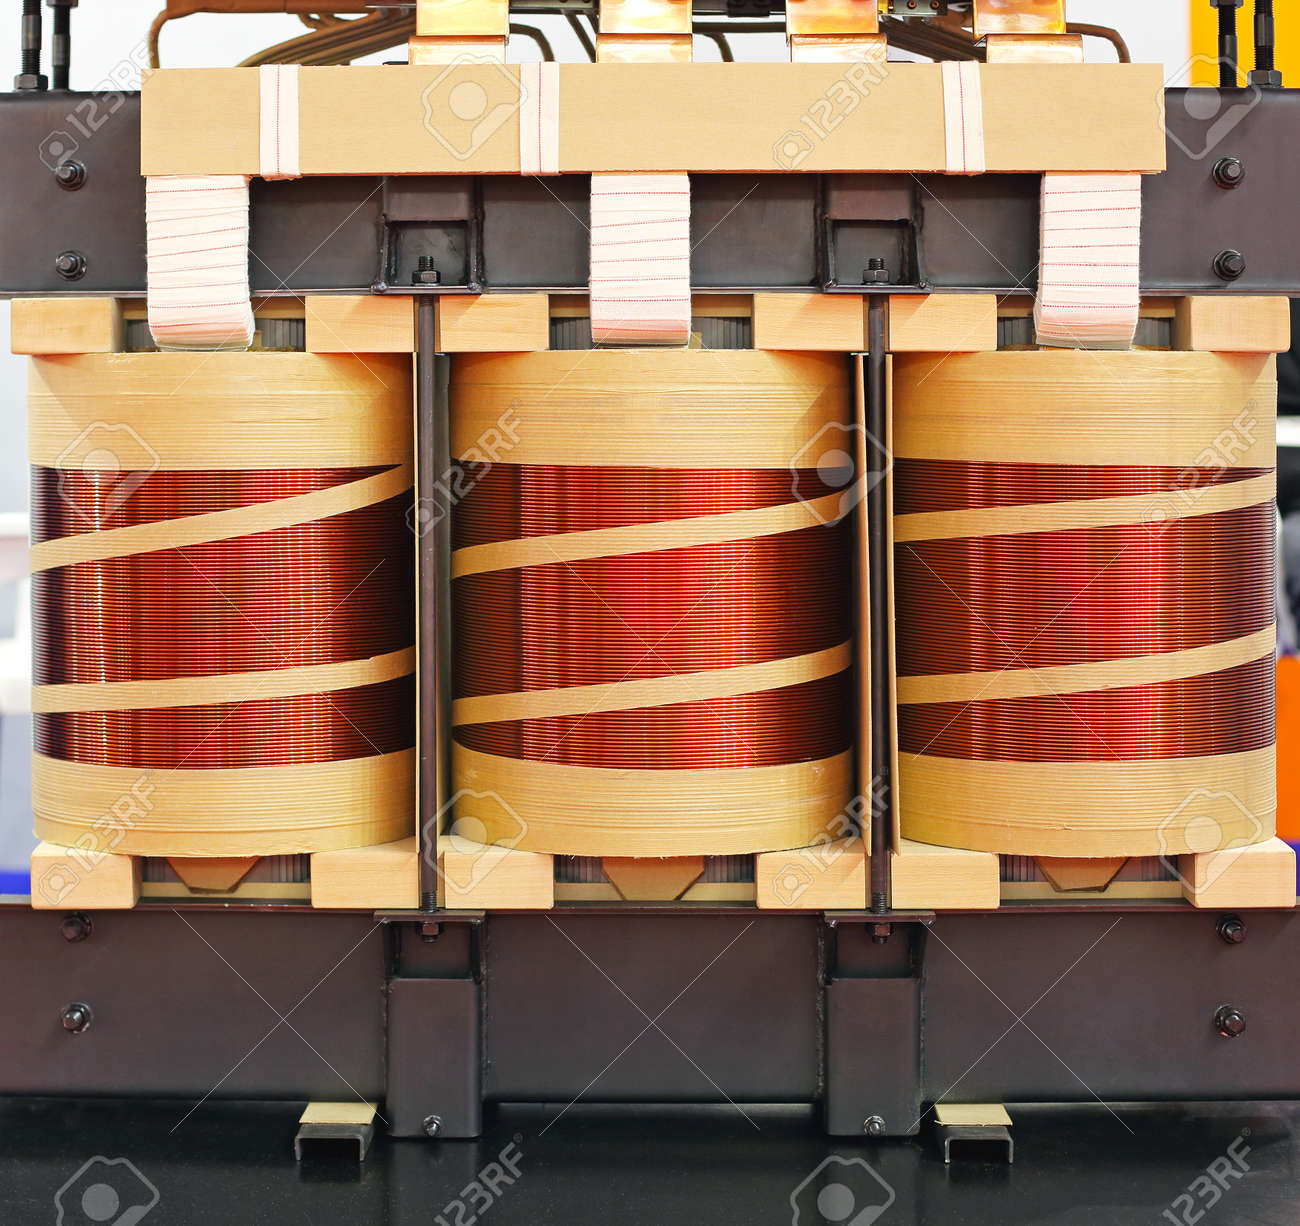 Big Industrial Electric Transformer Device With Copper Wire Coils ...